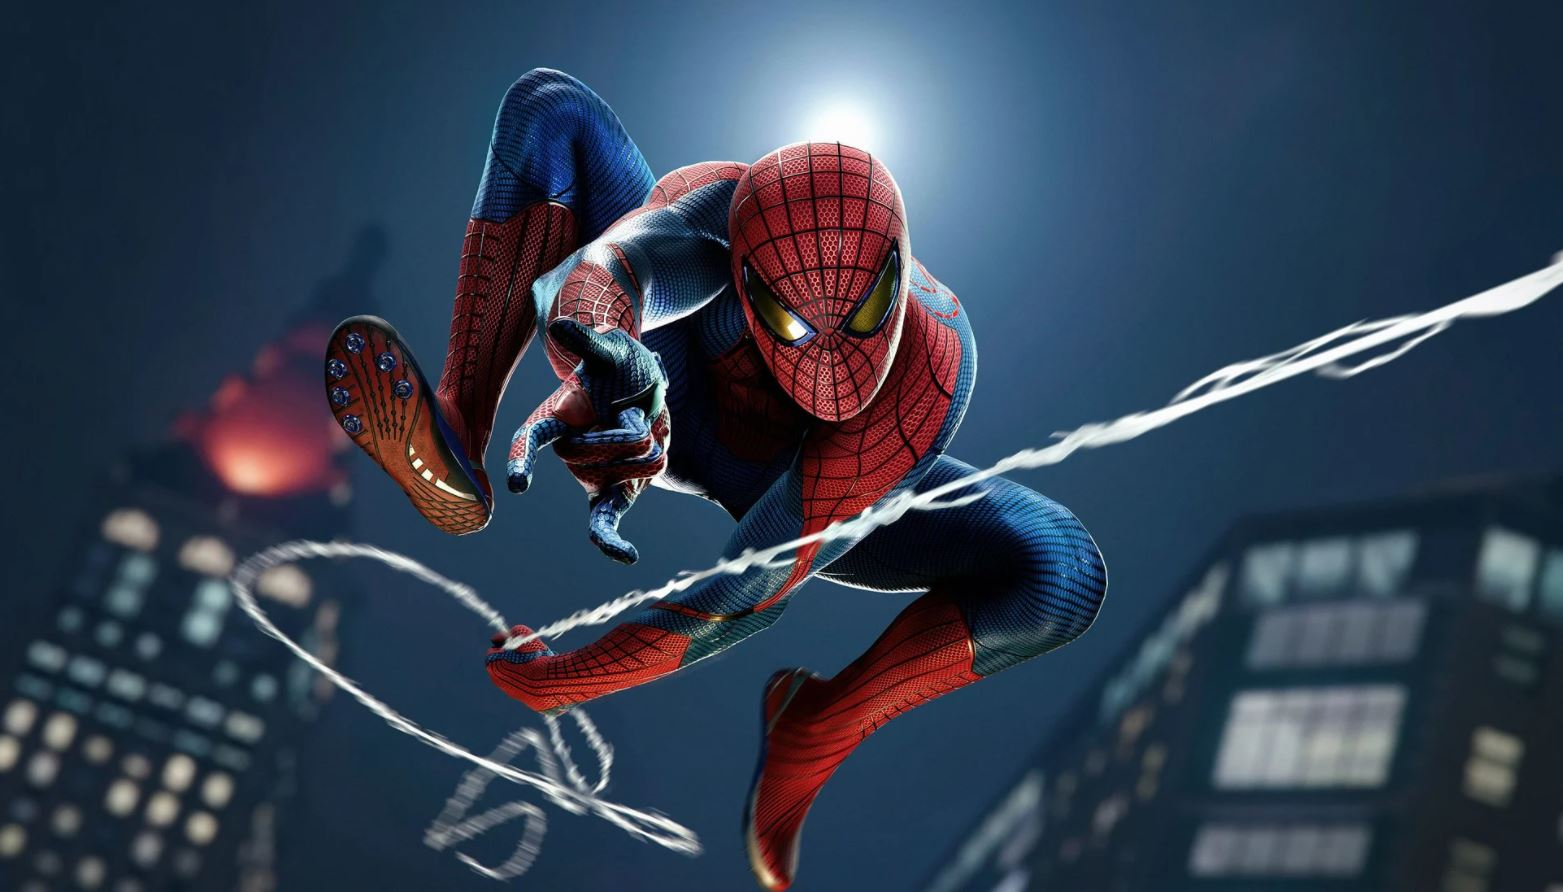 spider-man-remastereds-new-suits-will-come-to-the-ps4-version-of-the-game-at-some-point